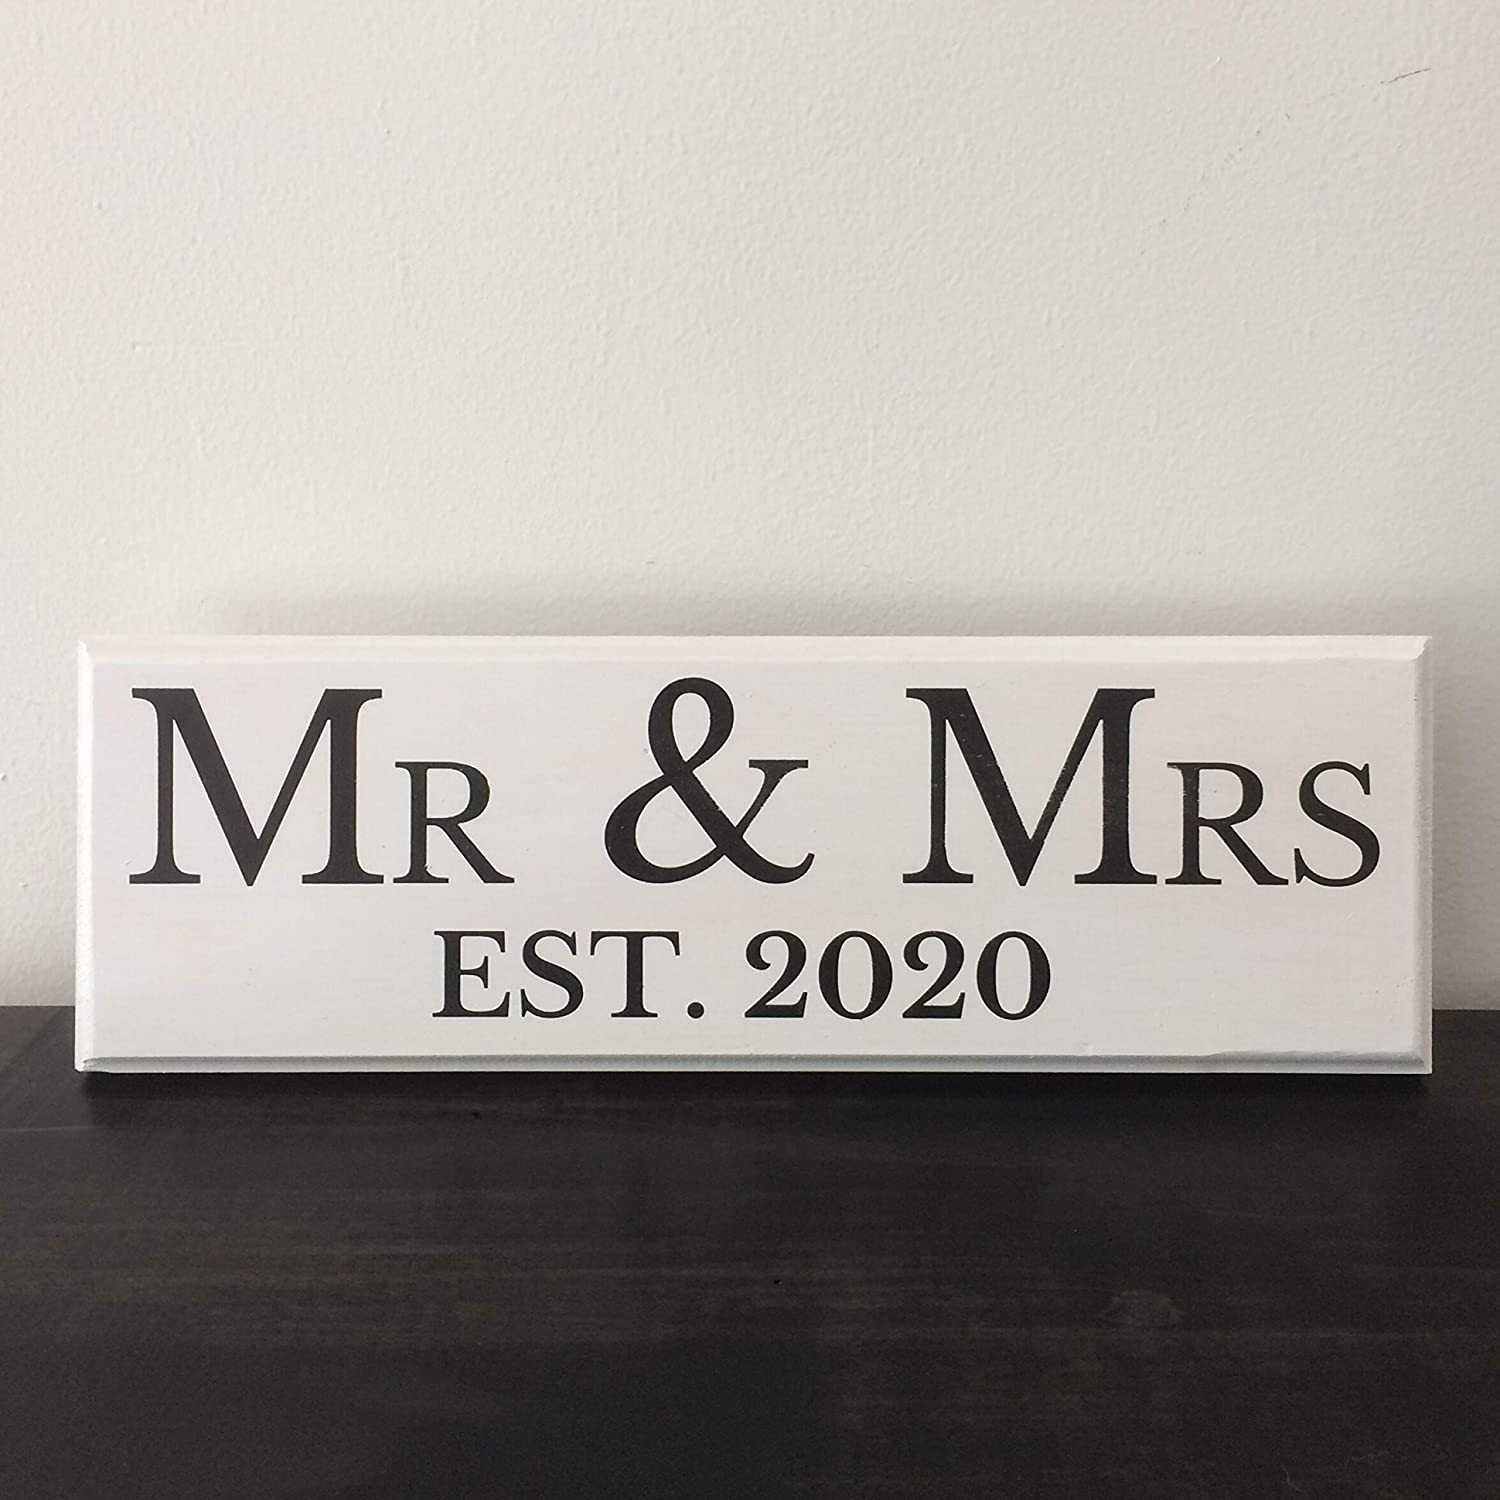 Gift Box 2020 Wedding Signs Mr Mrs 2020 Brown New Logo Hanger and Stand Included Handcrafted Sign Let the Fun Begin Mr /& Mrs Est Bridal Shower Engagement Gifts